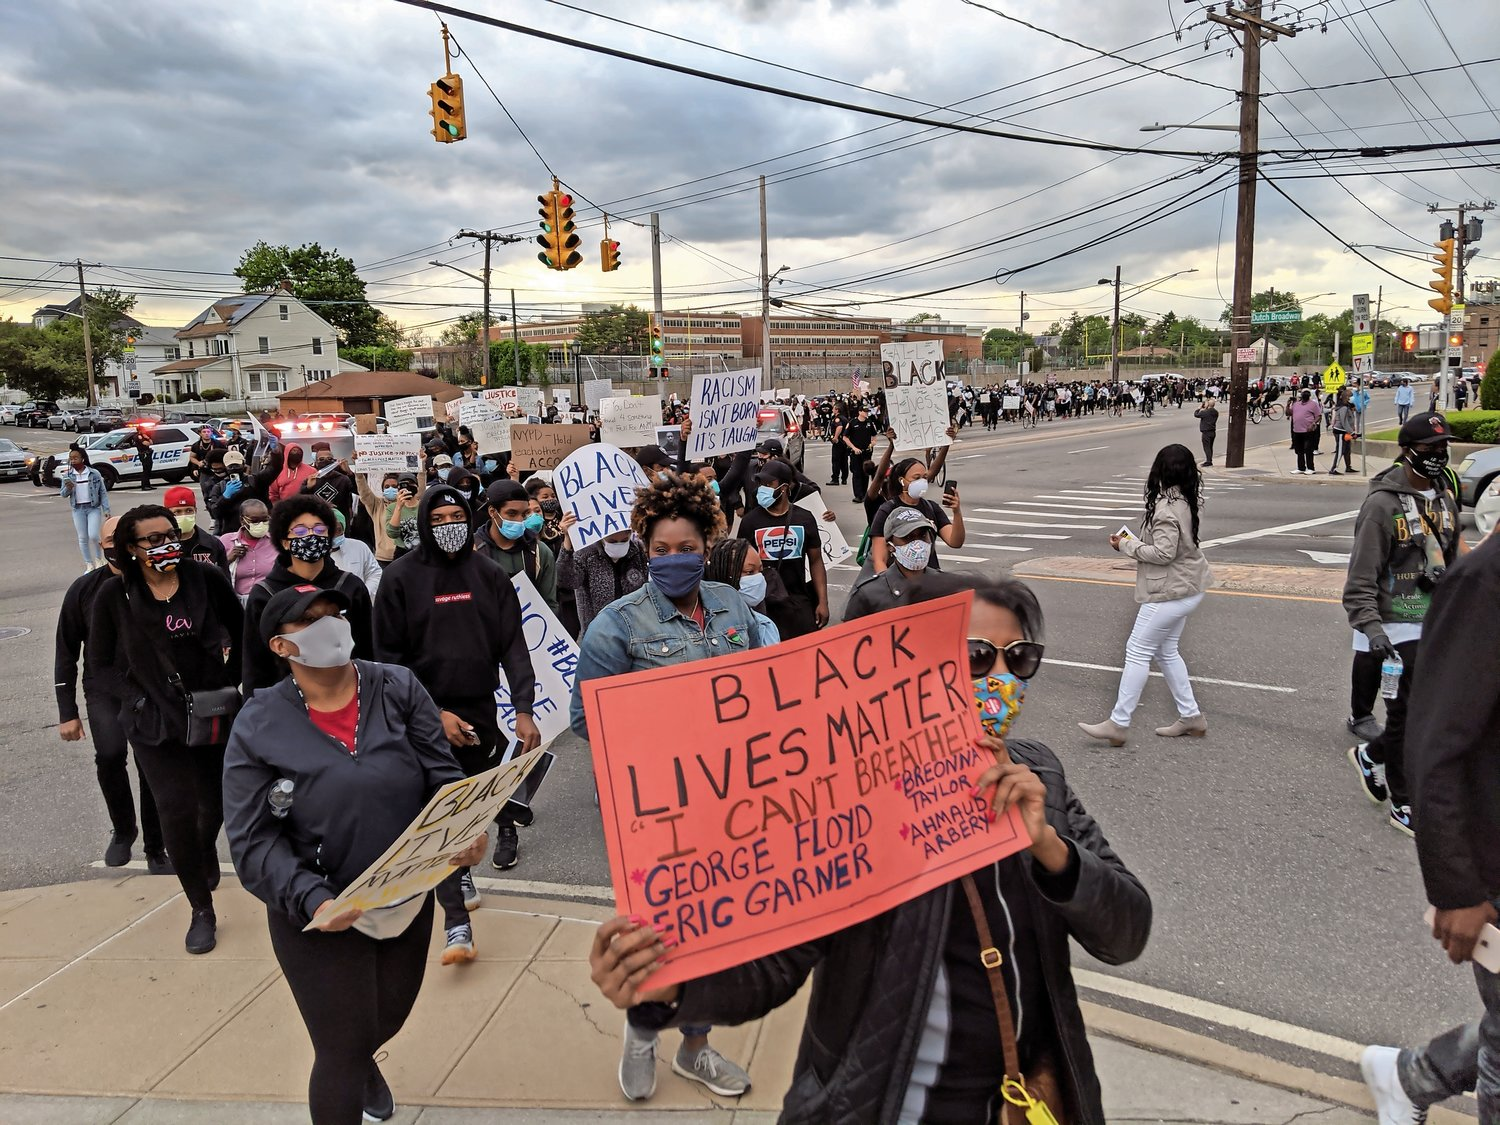 Nearly 200 Elmont and Valley Stream residents marched through the streets on Monday night to protest police violence, one week after a police officer killed George Floyd in Minneapolis.